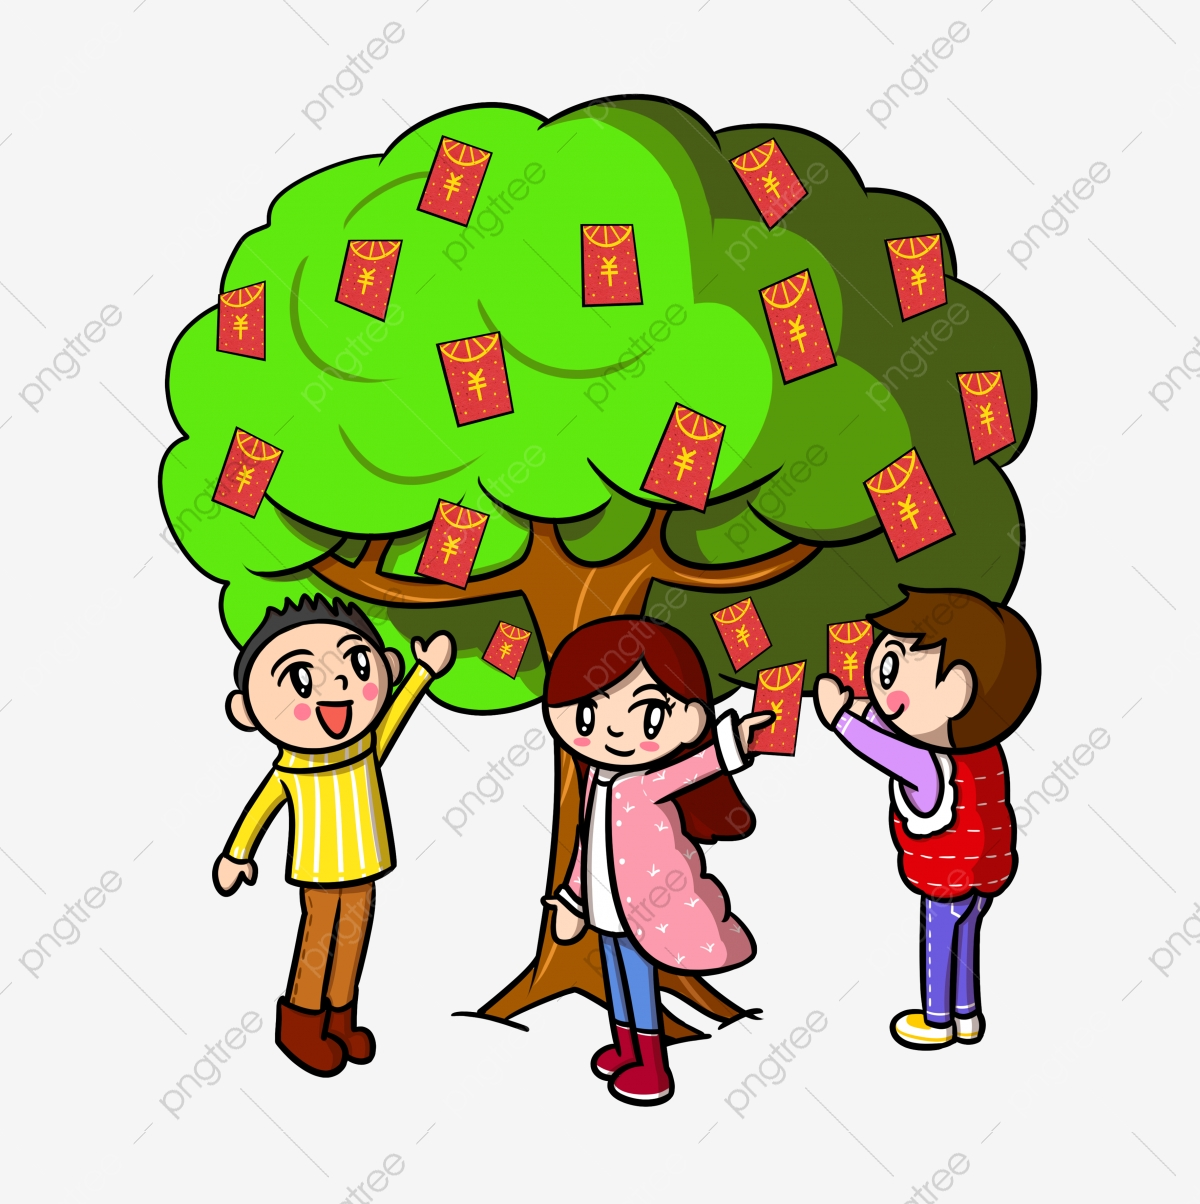 Royalty Free Clipart Image of a Wealthy Family #278910 | iCLIPART.com